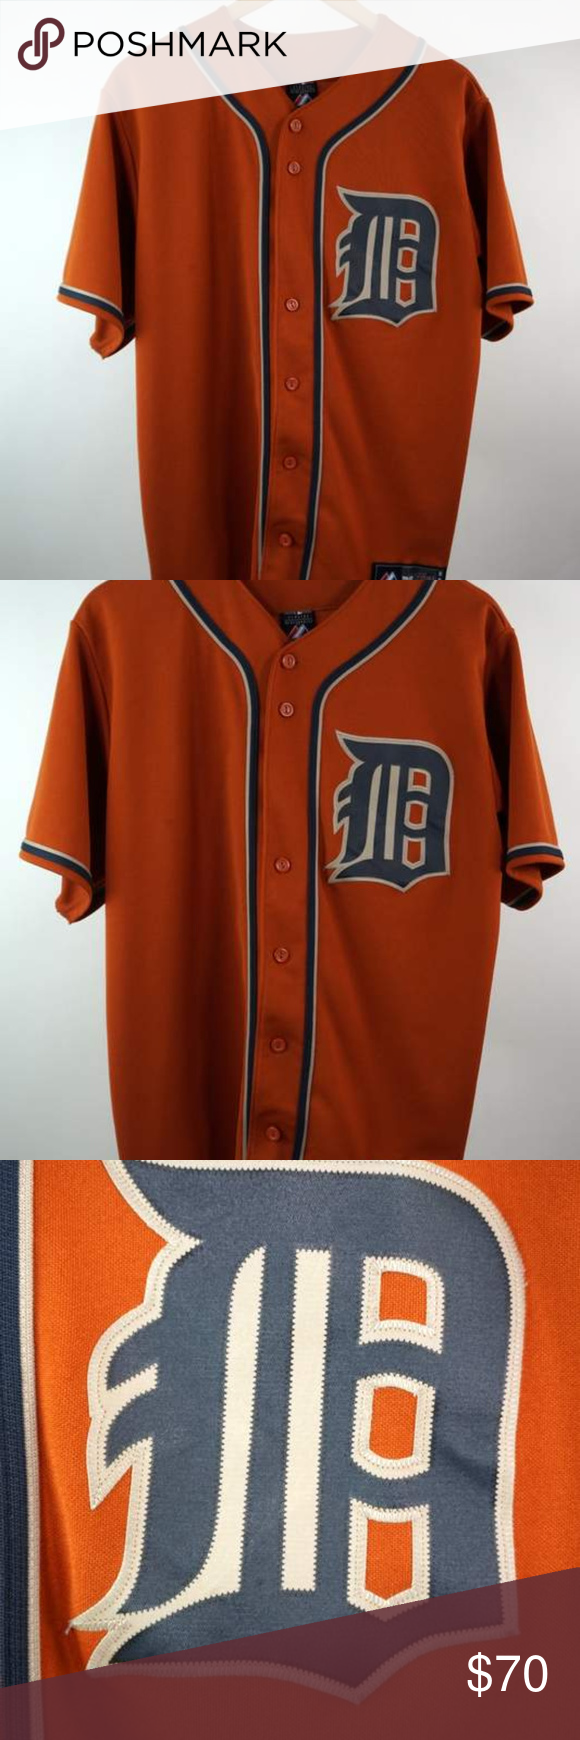 Miguel Cabrera Detroit Tigers Orange Jersey Sz Med Majestic Men S Mlb Miguel Cabrera Detroit Tigers Orange Jersey Sz Men S Medium Miguel Cabrera Jersey Detroit